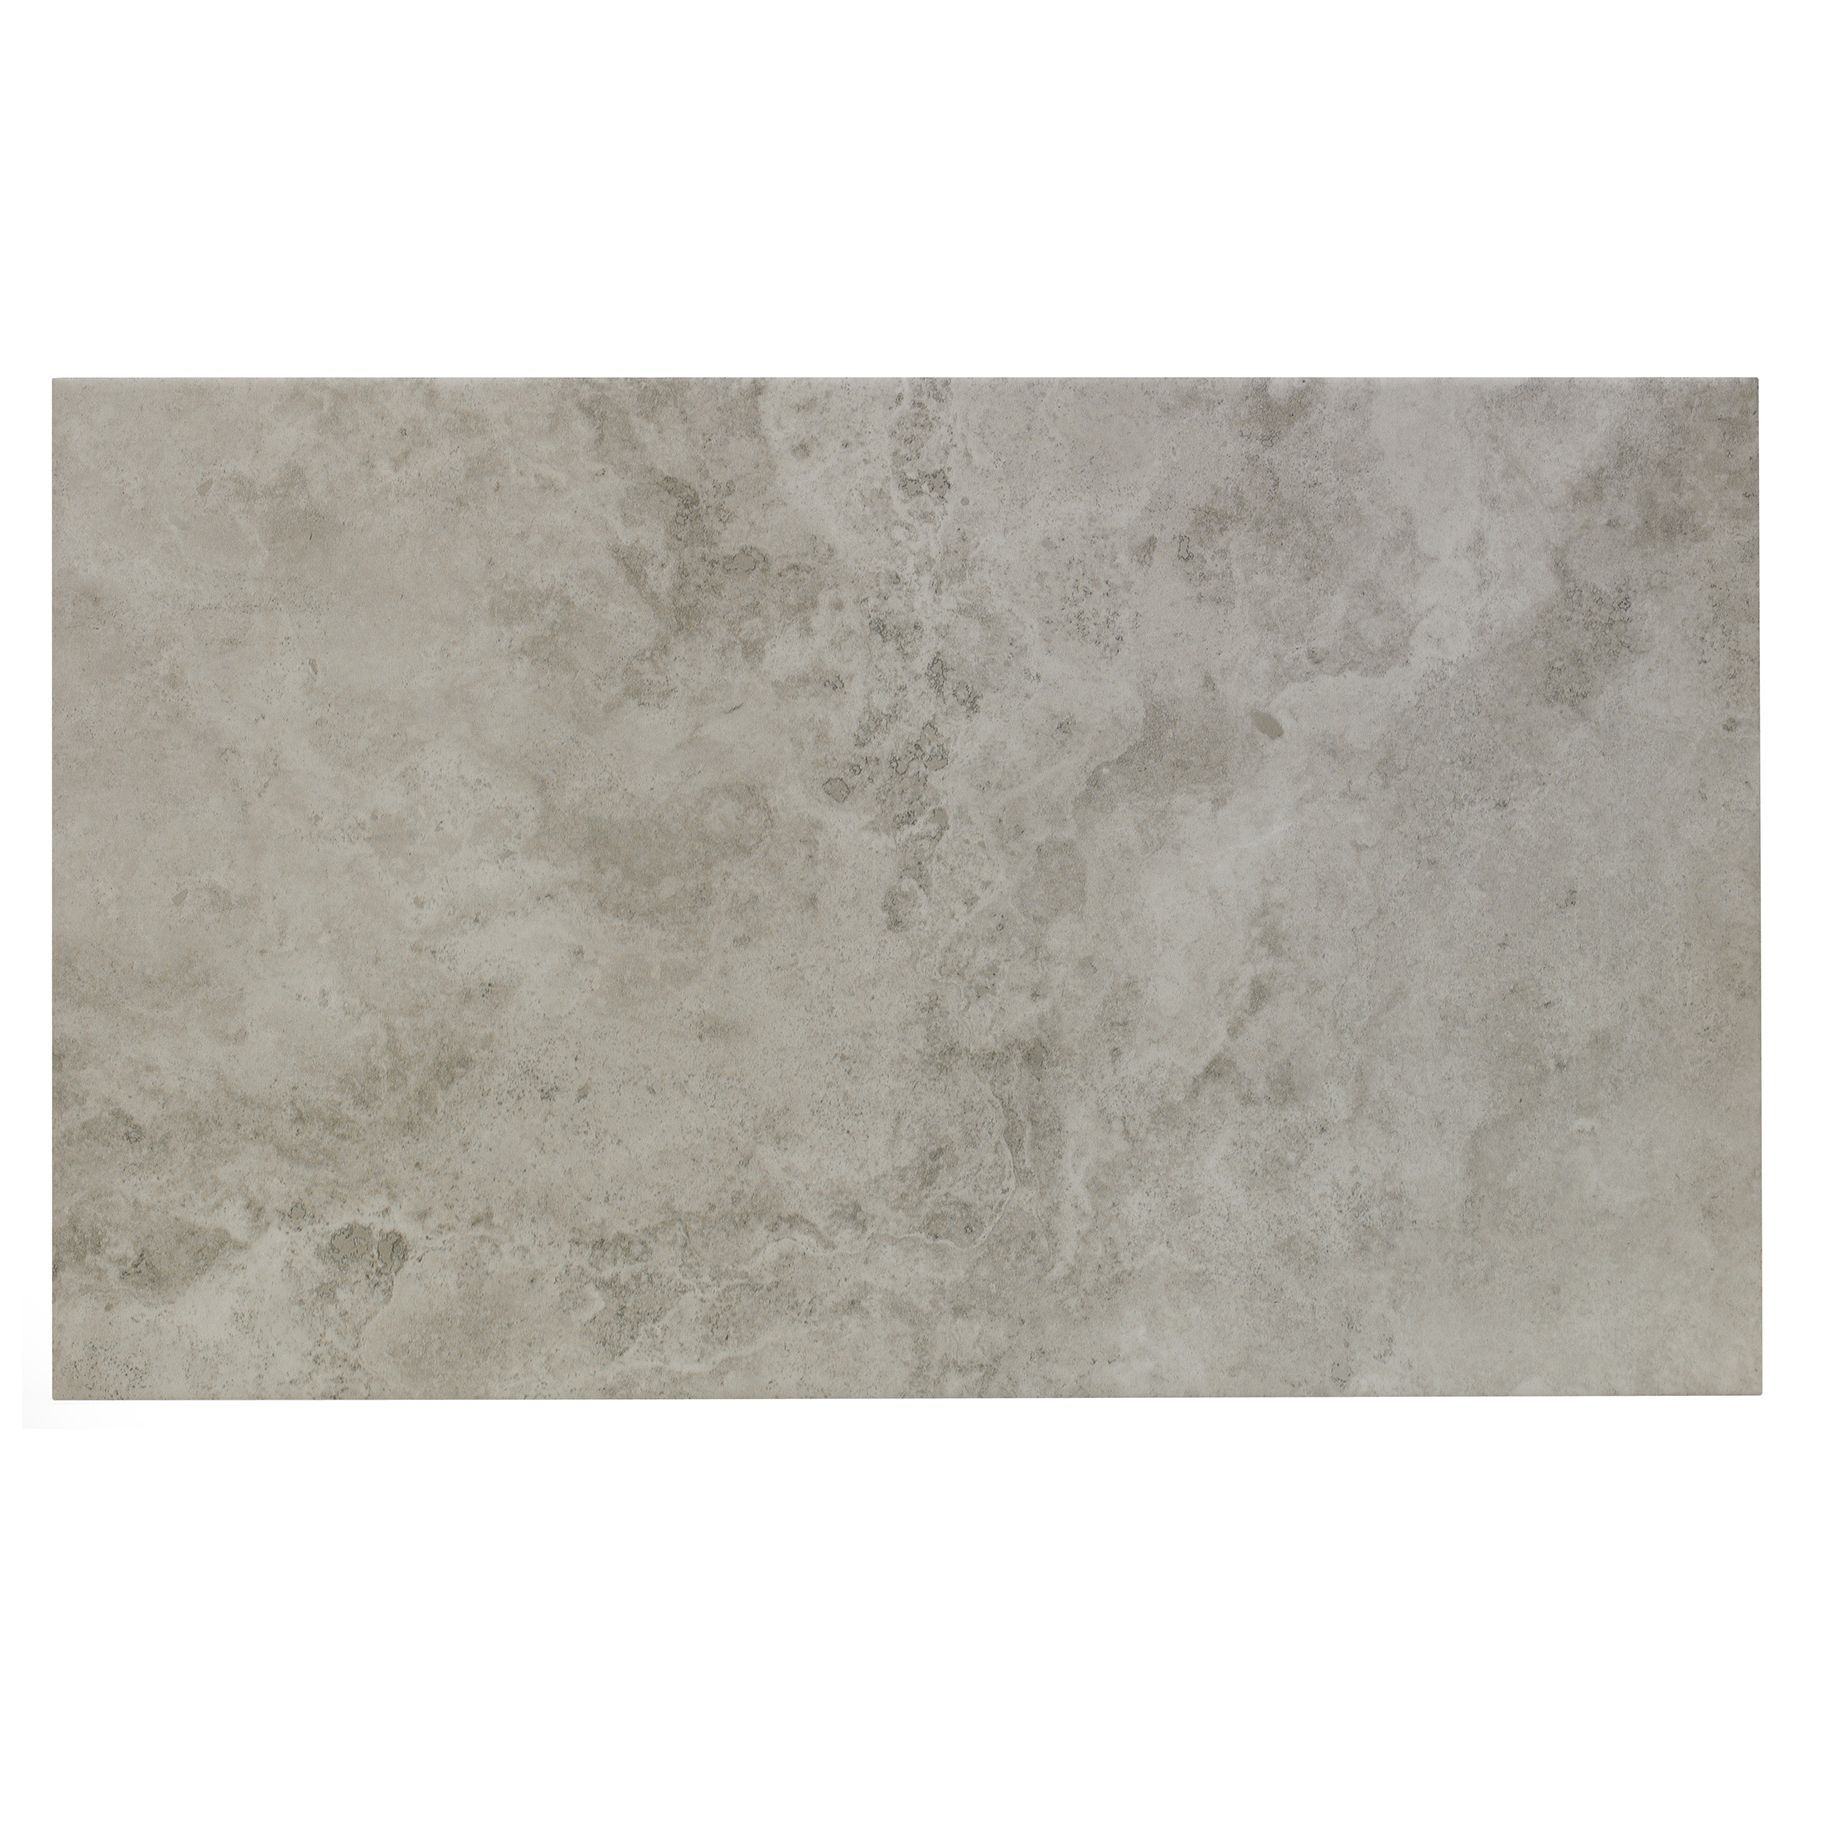 Oscano pebble stone effect ceramic wall floor tile pack of 6 oscano pebble stone effect ceramic wall floor tile pack of 6 l498mm w298mm doublecrazyfo Gallery